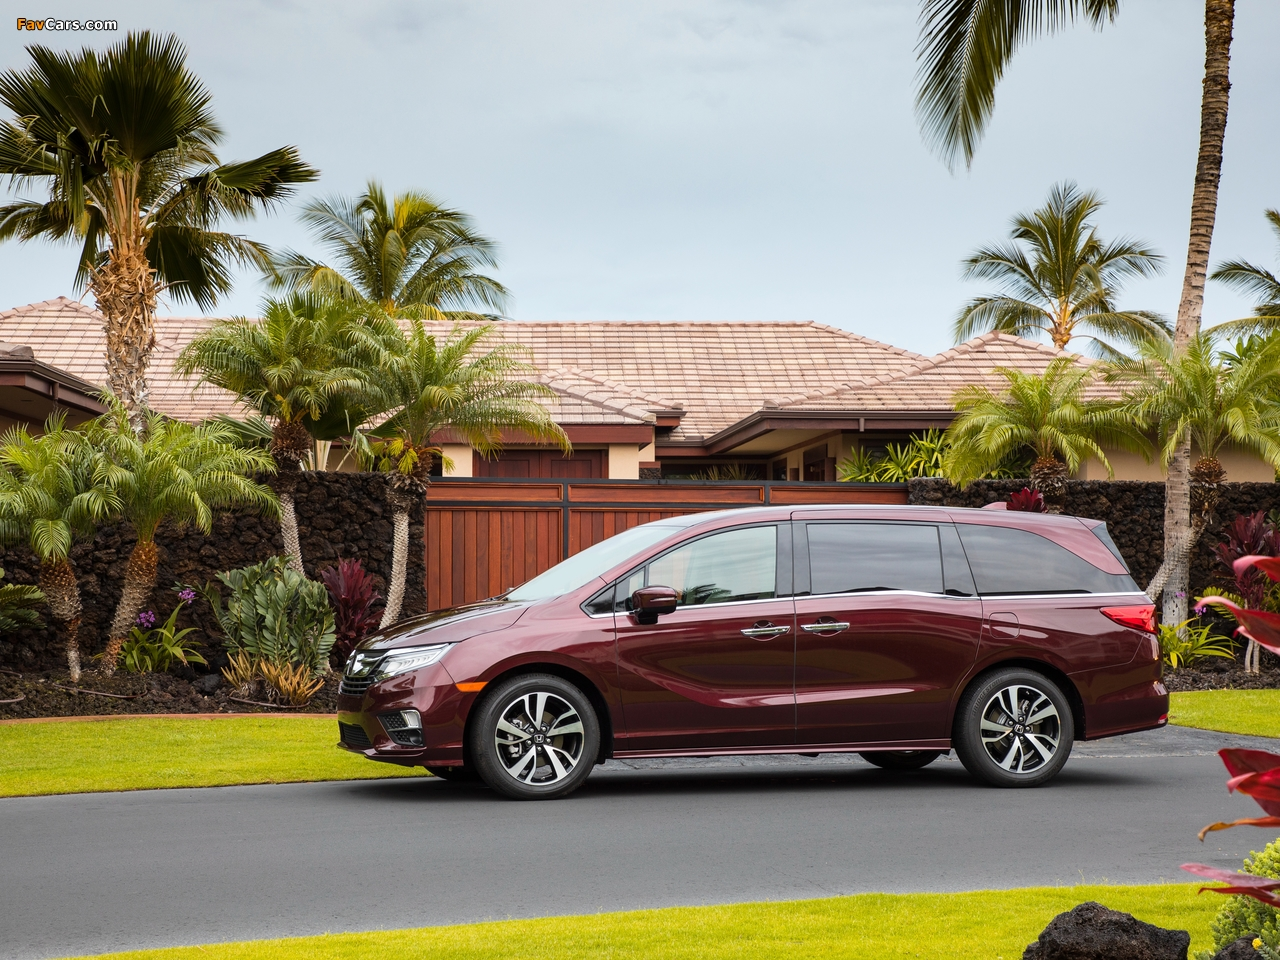 Honda Odyssey 2017 pictures (1280 x 960)